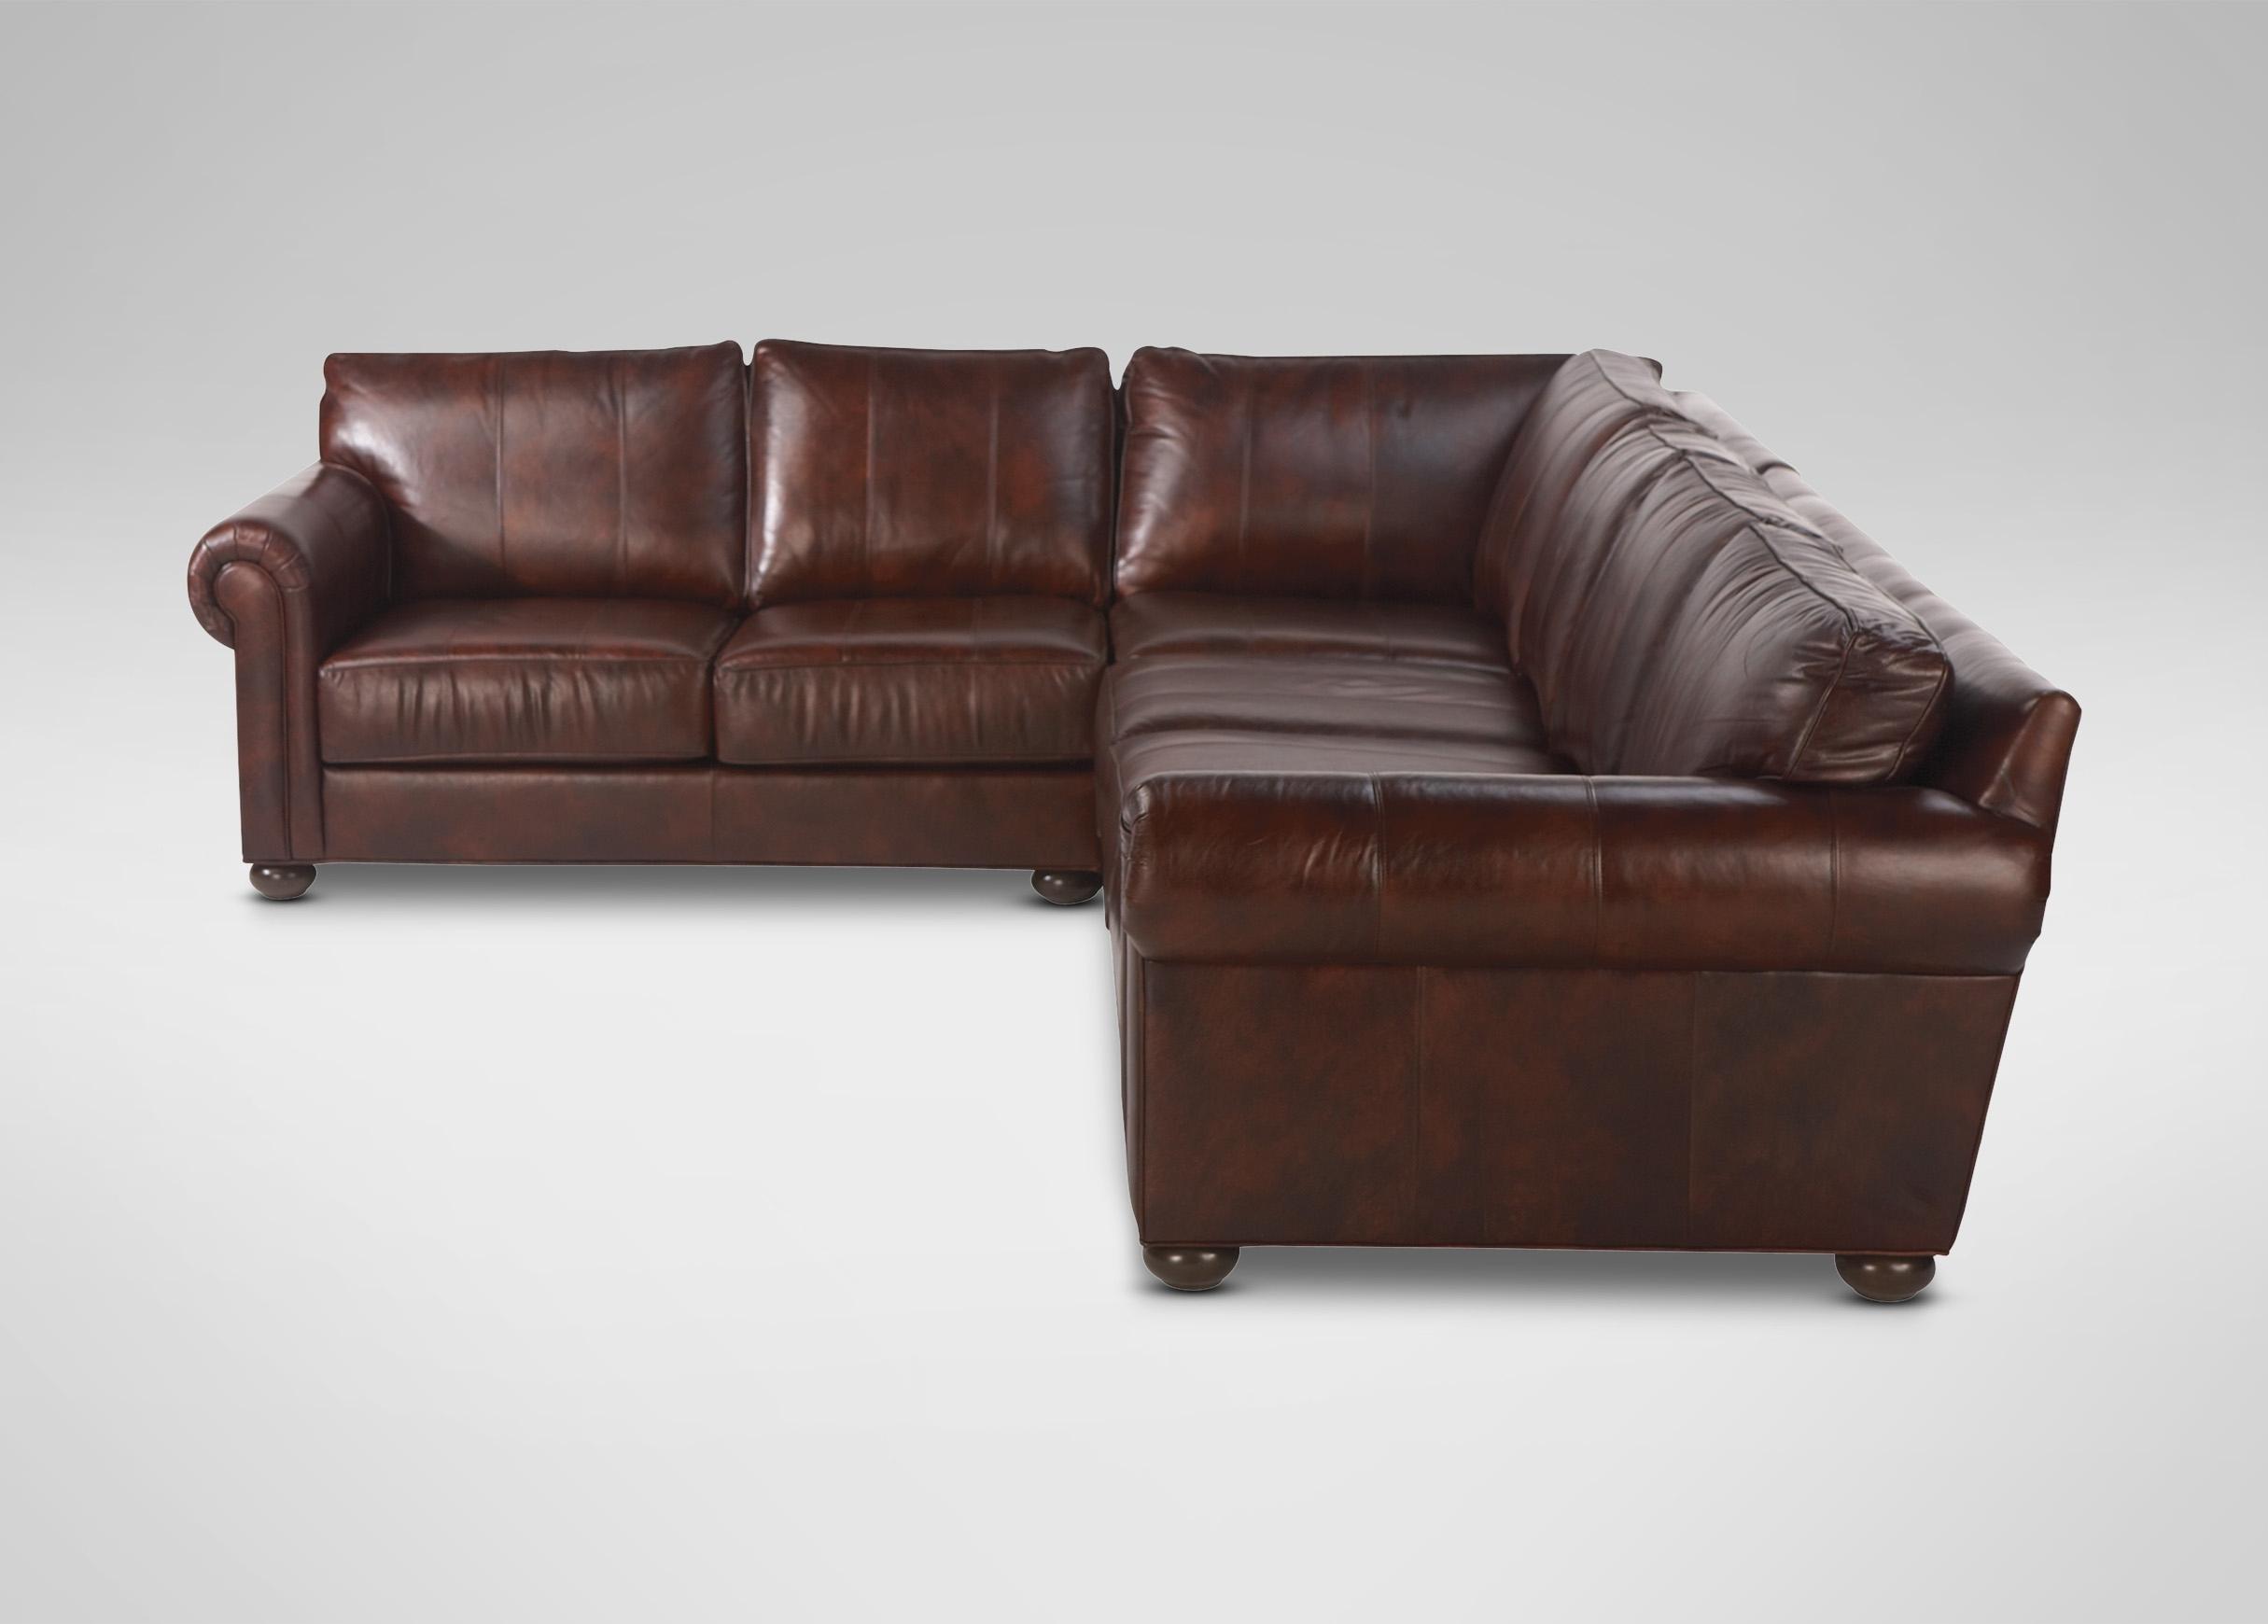 Fantastic Ethan Allen Sectional Sofas For Your Richmond Leather Inside Sectional Sofas At Ethan Allen (View 10 of 10)